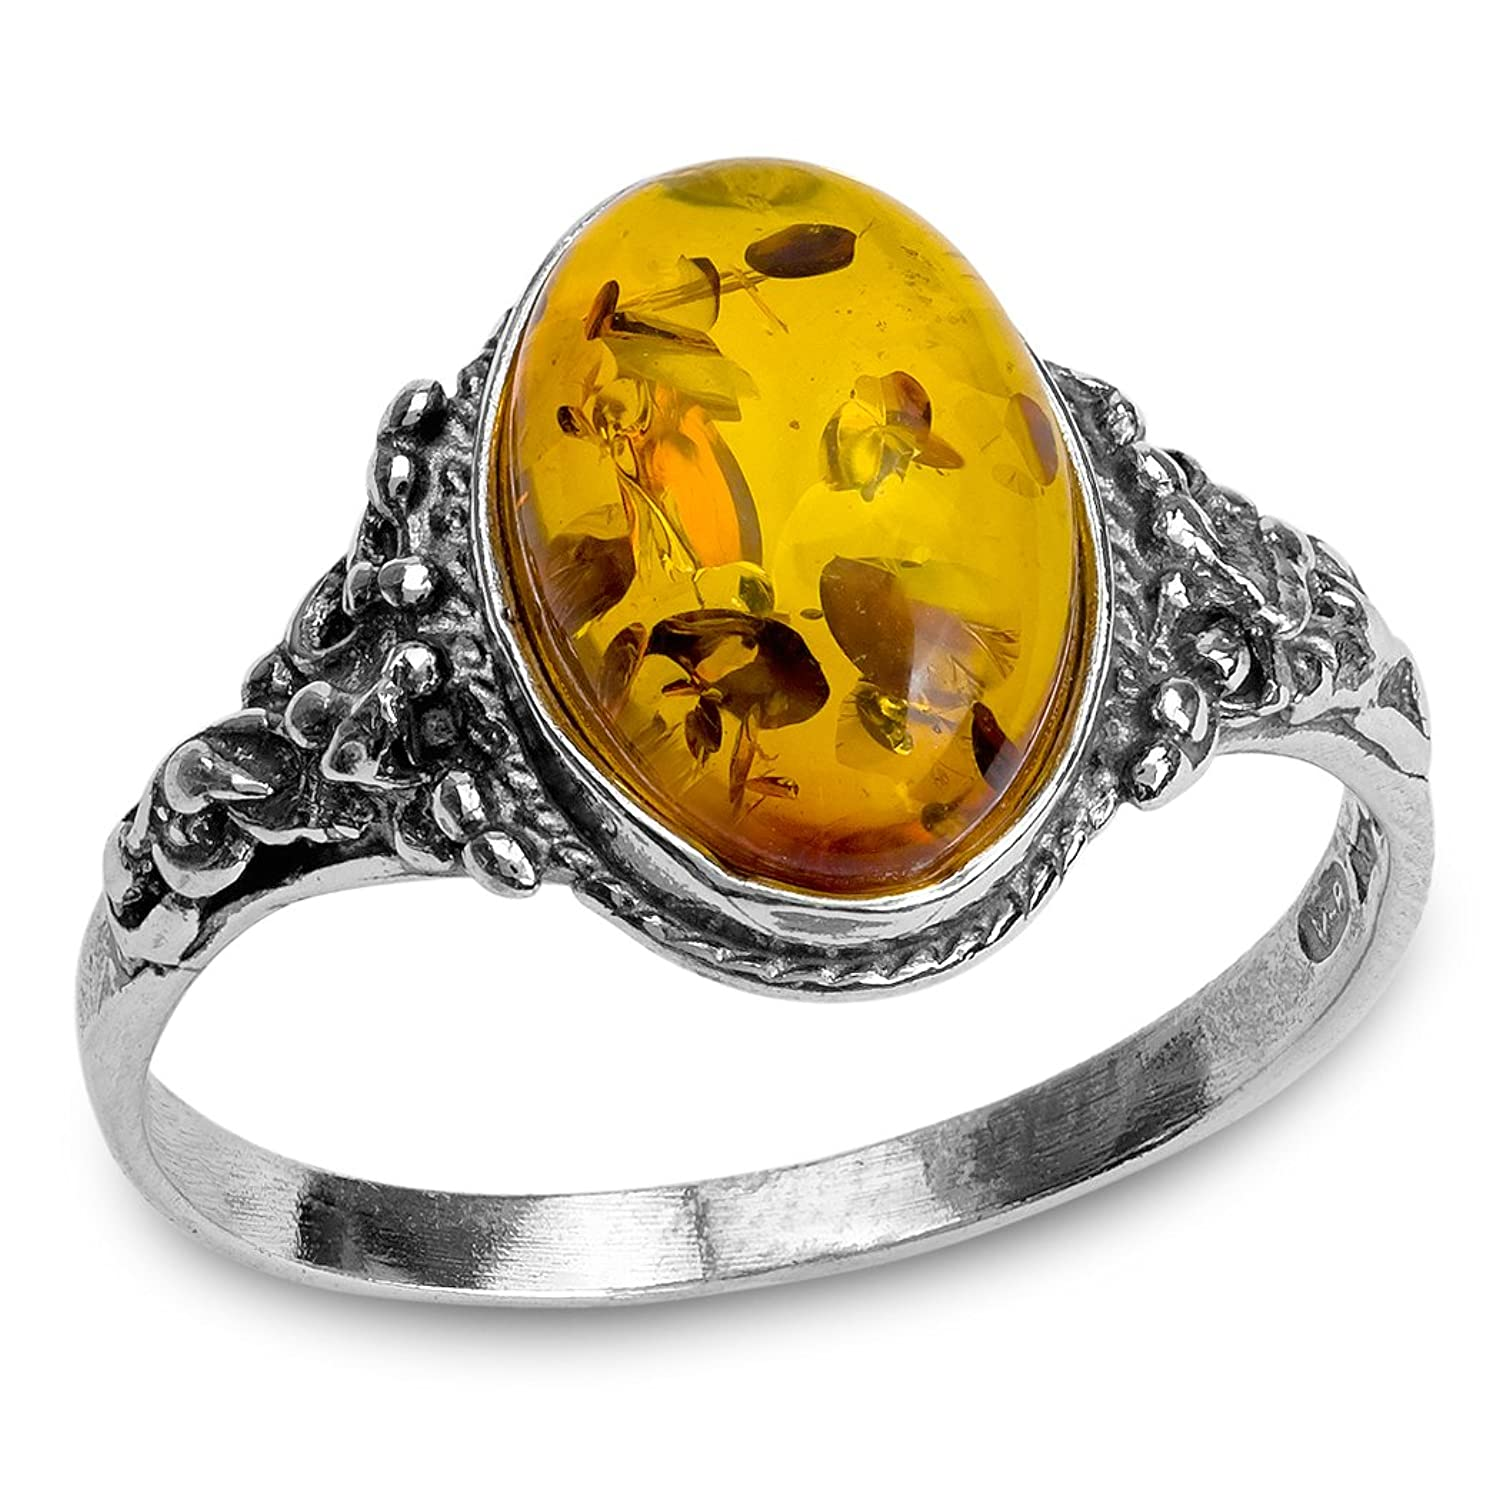 rings product amber engagement web to back shoppingringamber mohe ring